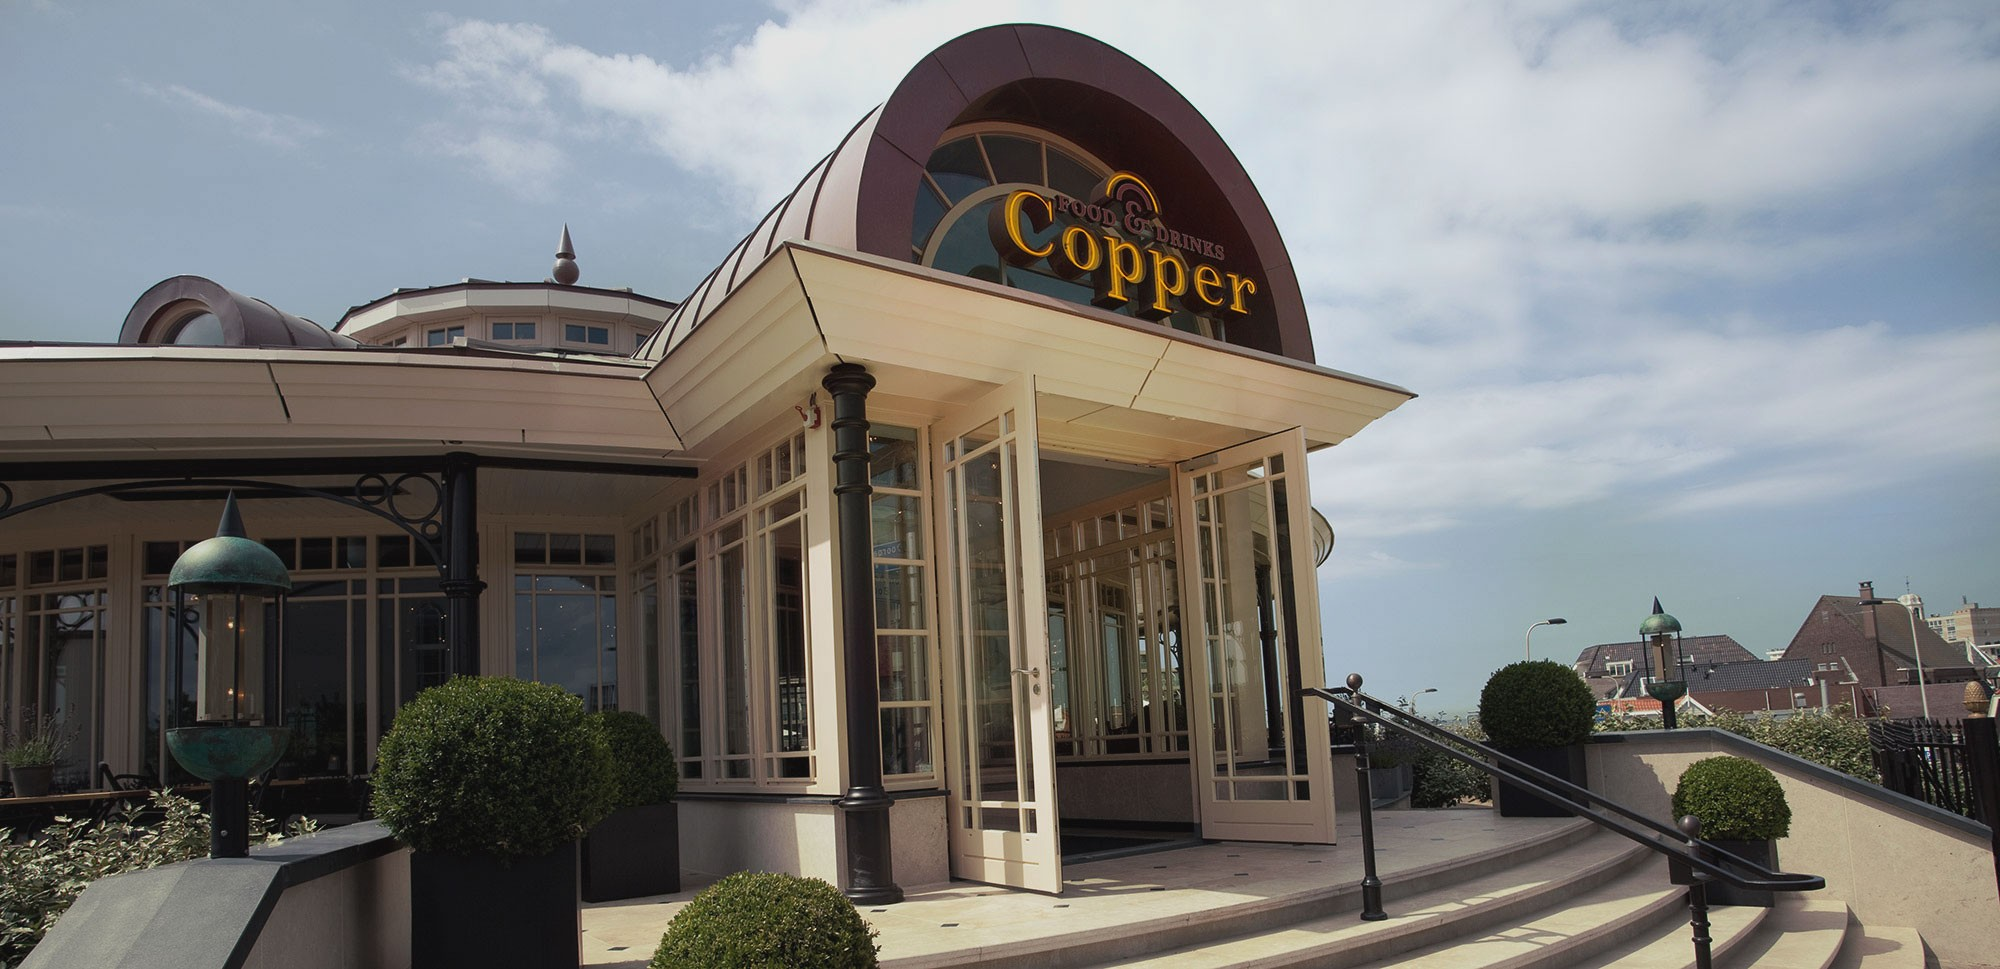 Restaurant Copper